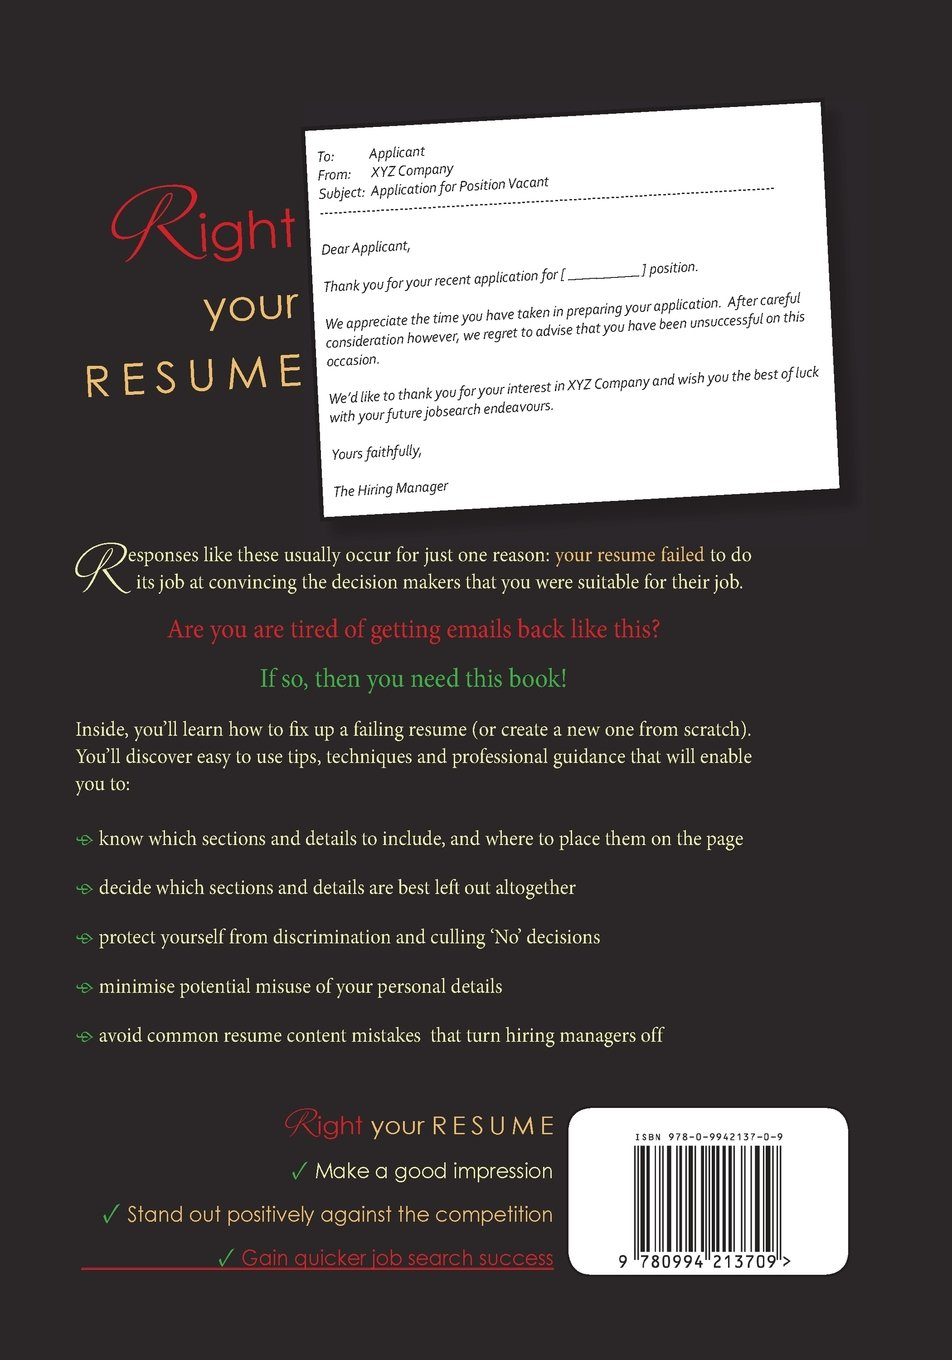 Right Your Resume Fix or create your resume content so you stand